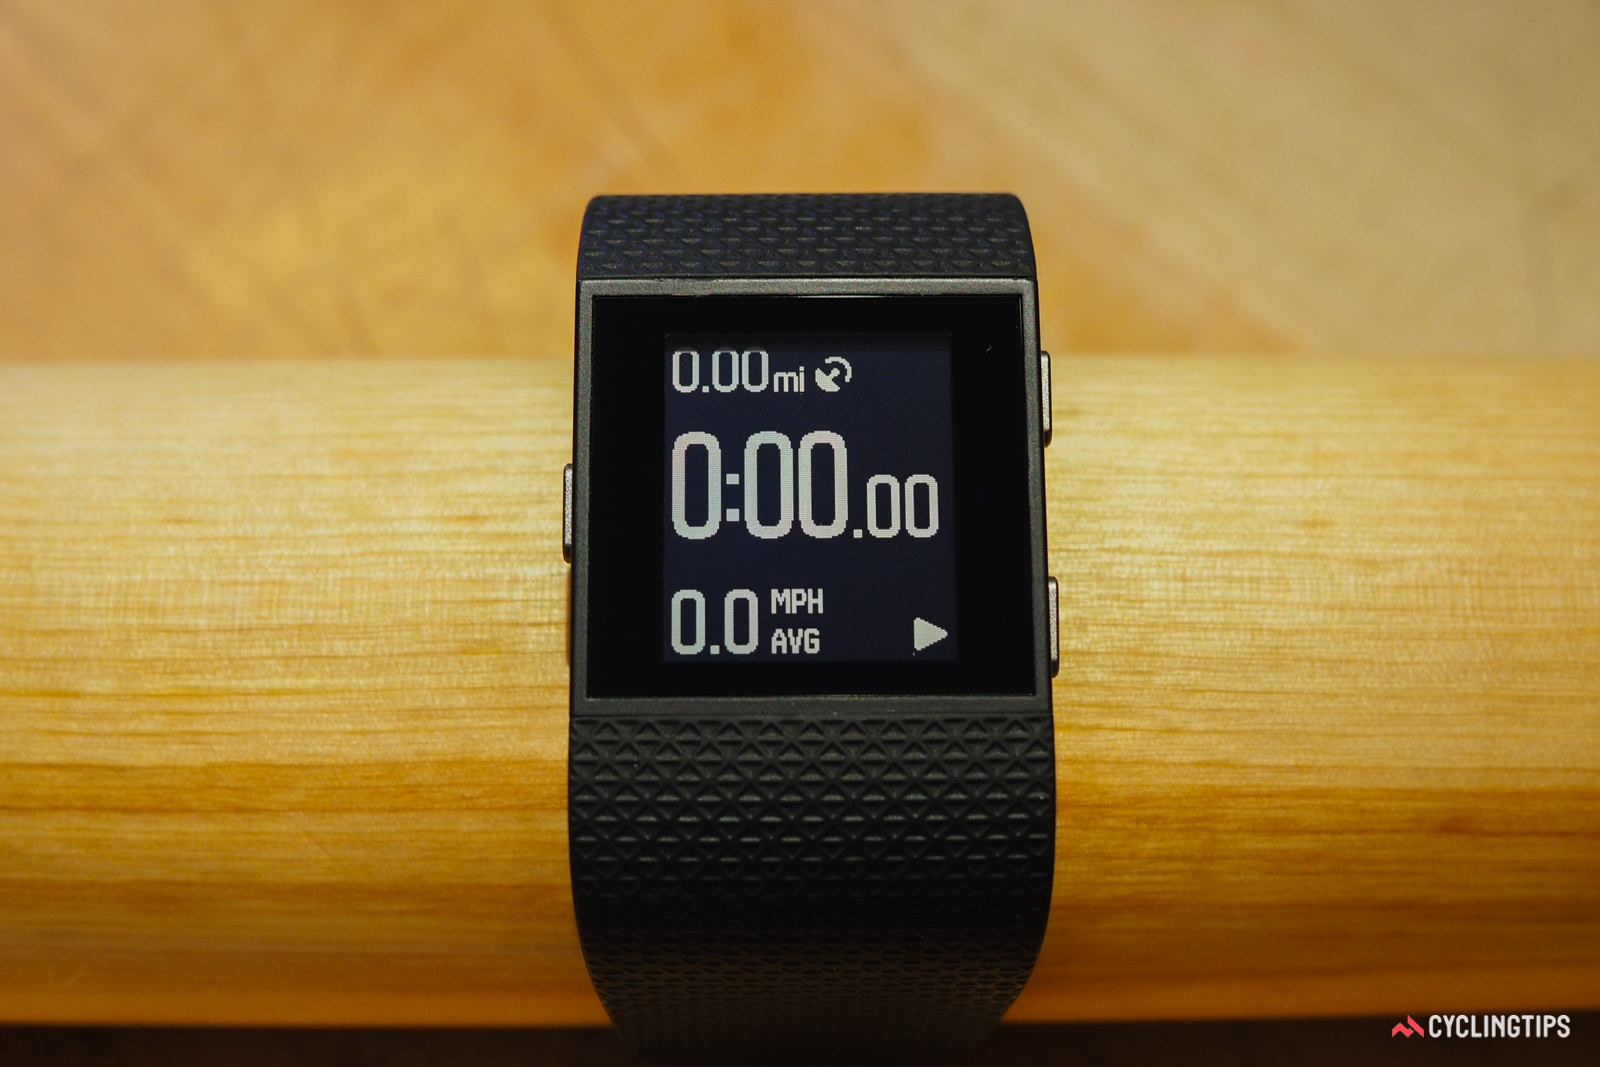 The Fitbit Surge's cycling data screens are decidedly limited.